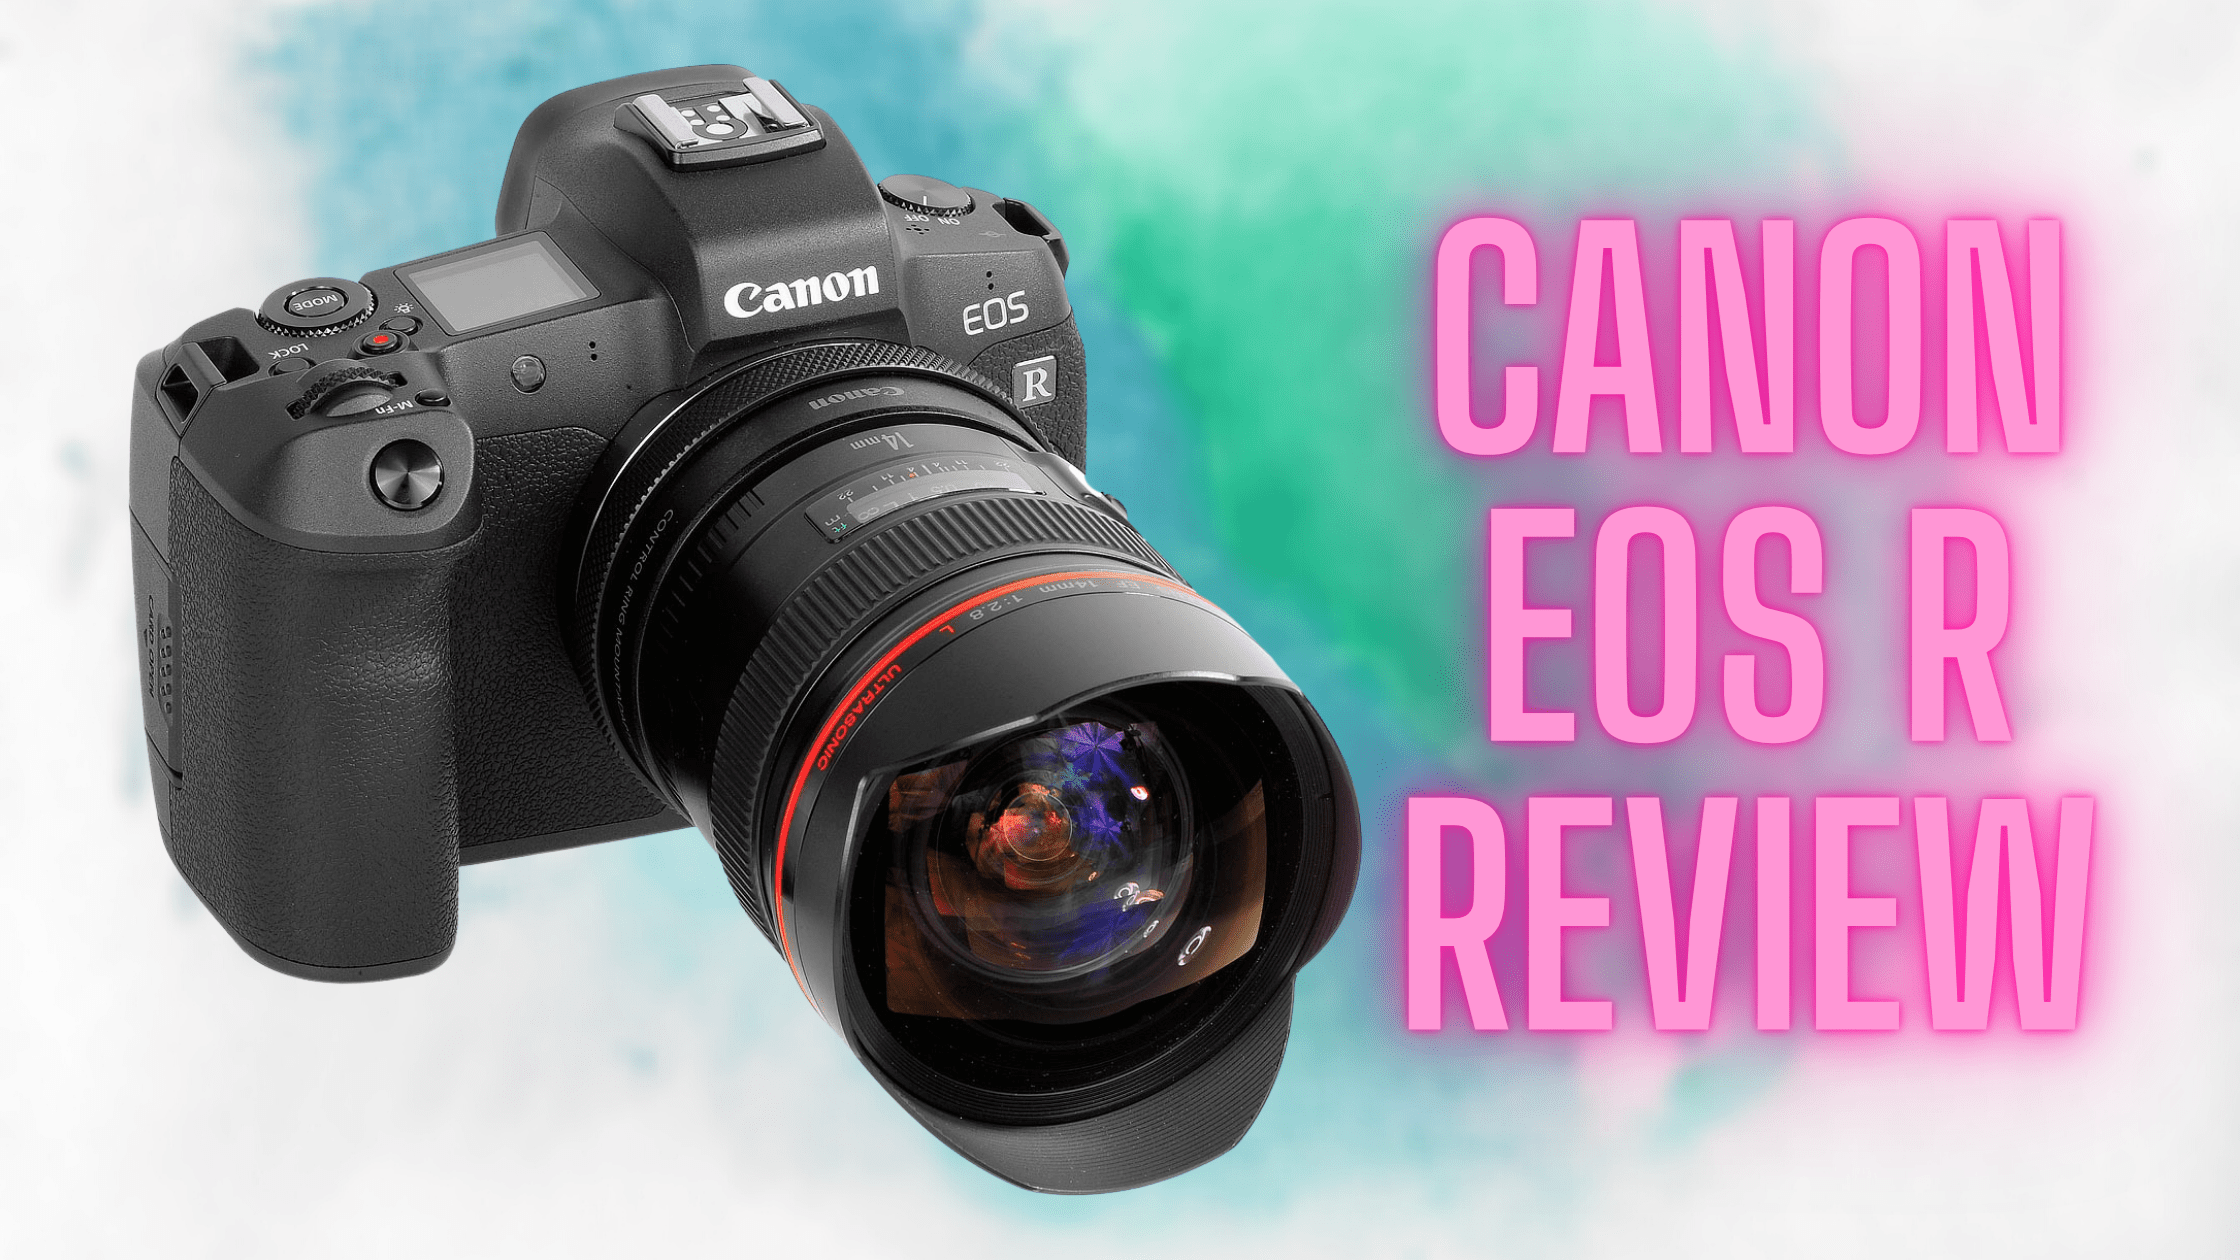 Canon EOS R review (A Decent Mirrorless Camera)